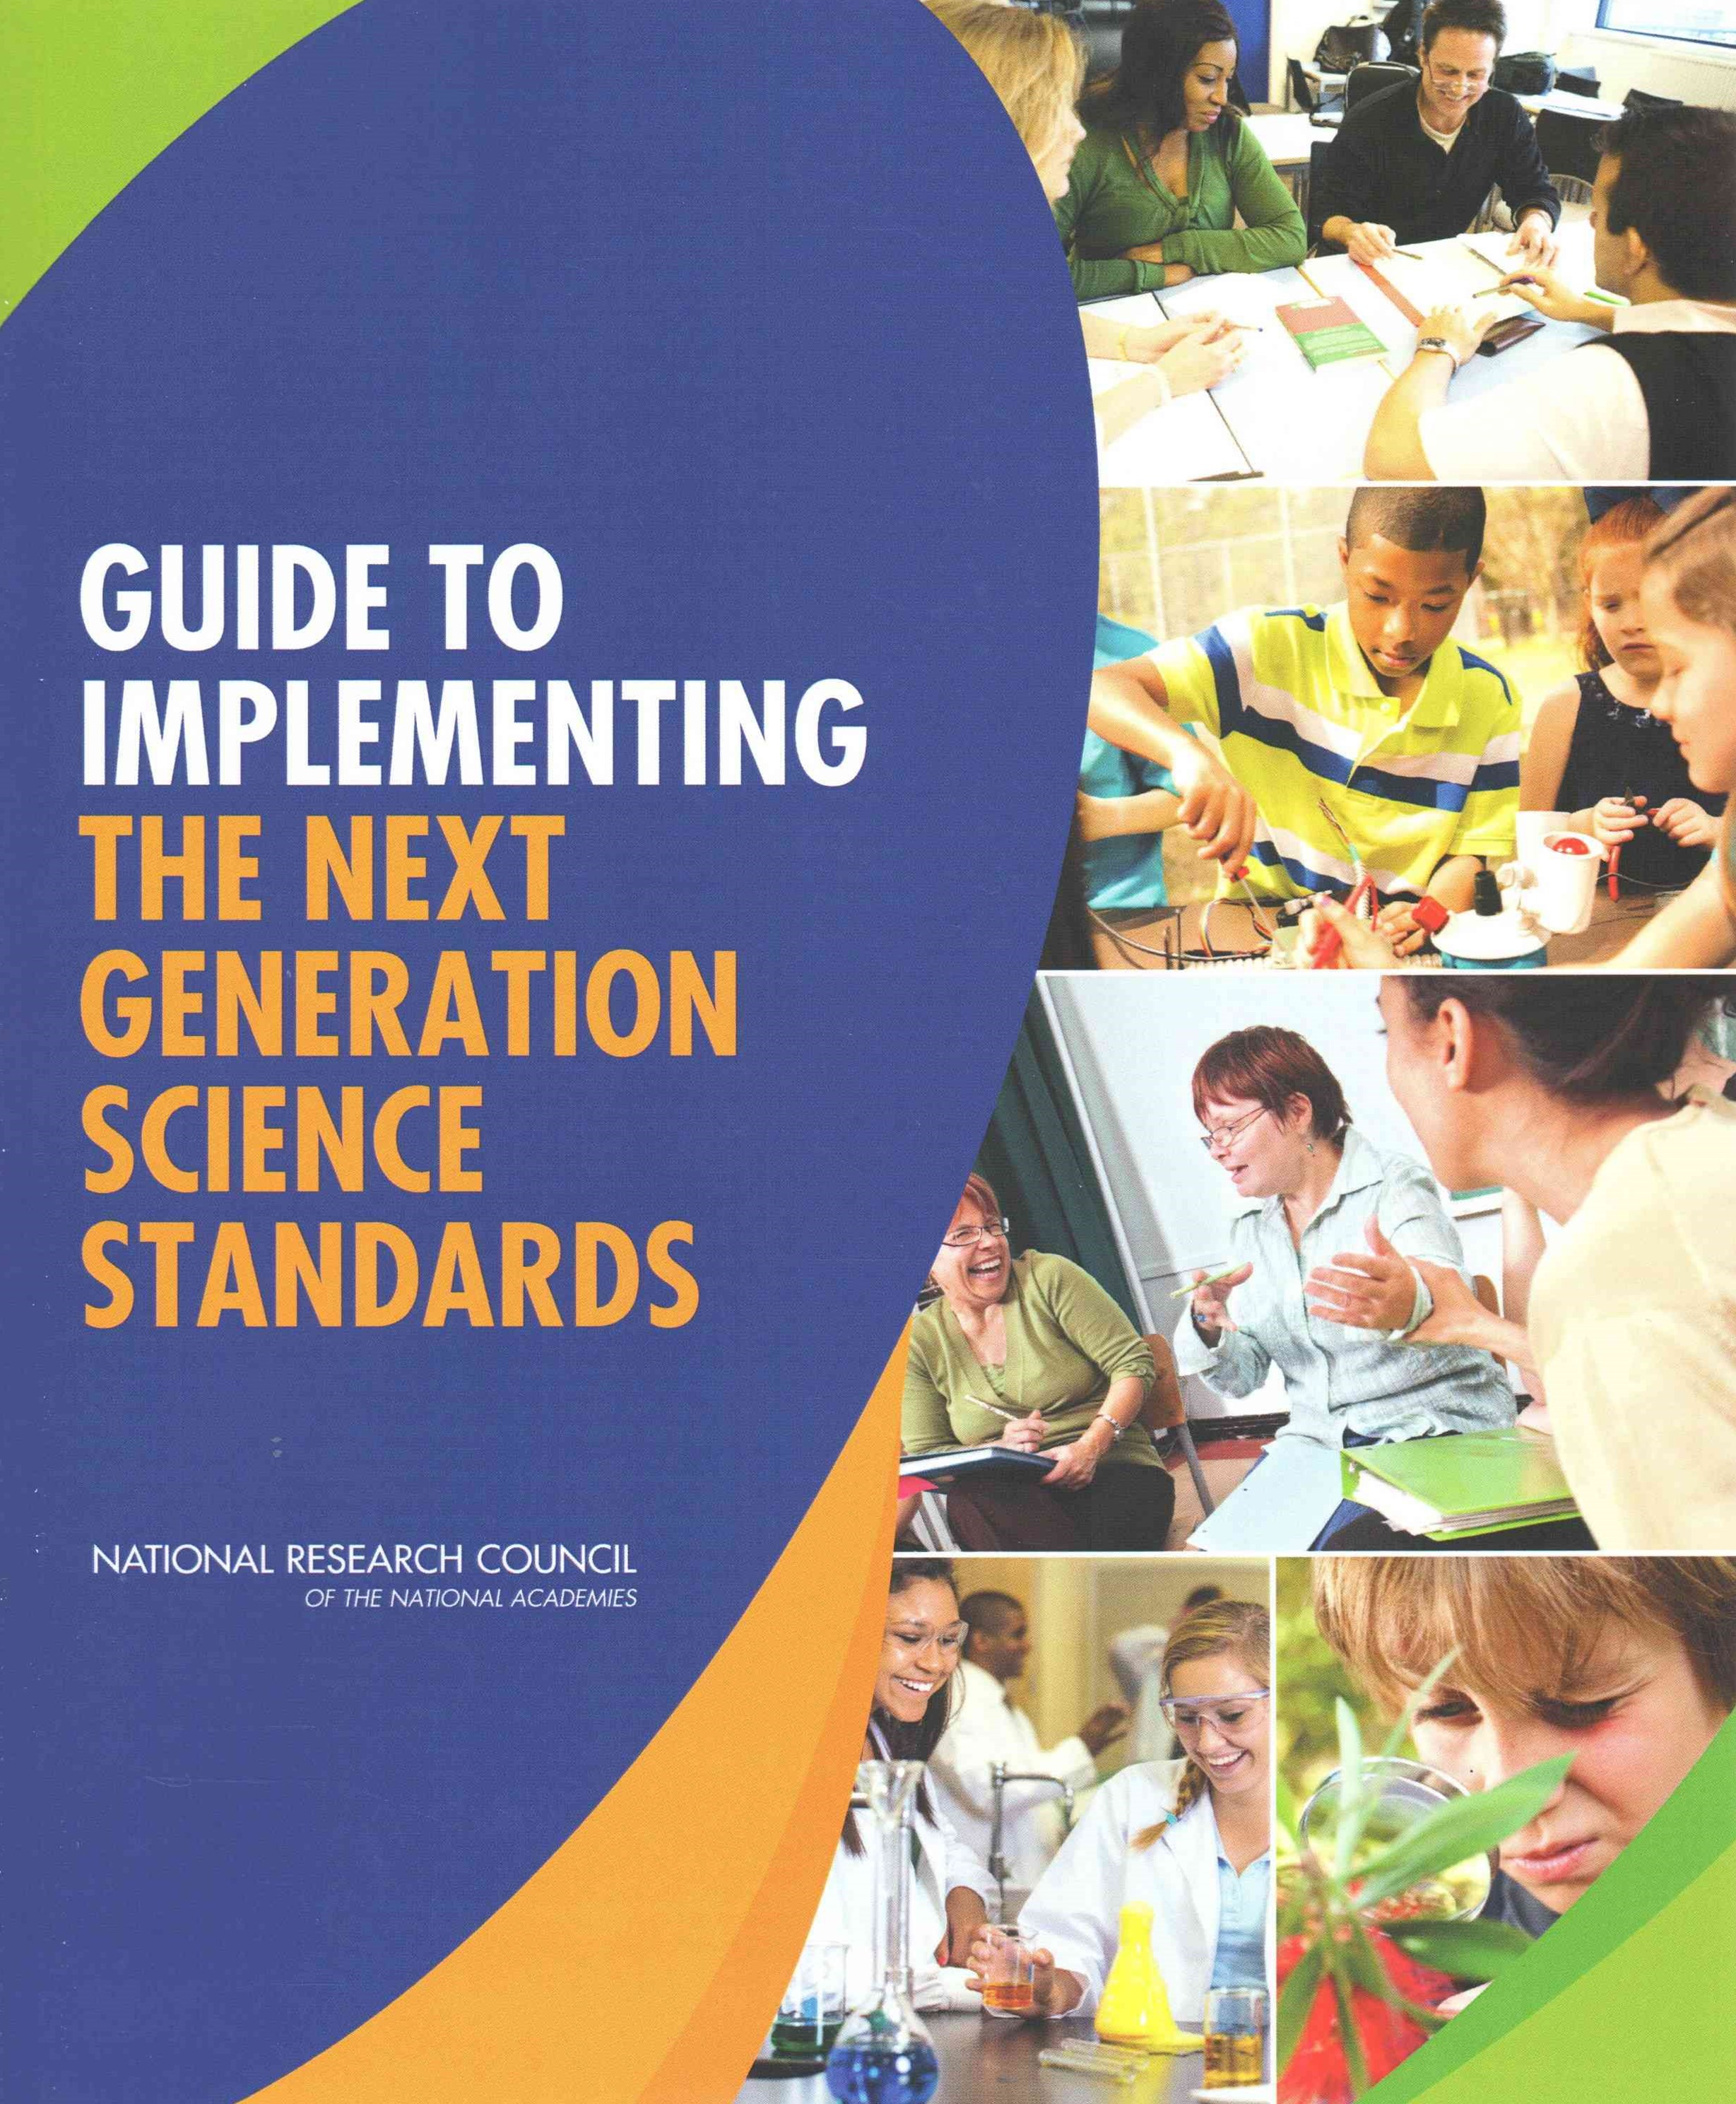 Guide to Implementing the Next Generation Science Standards